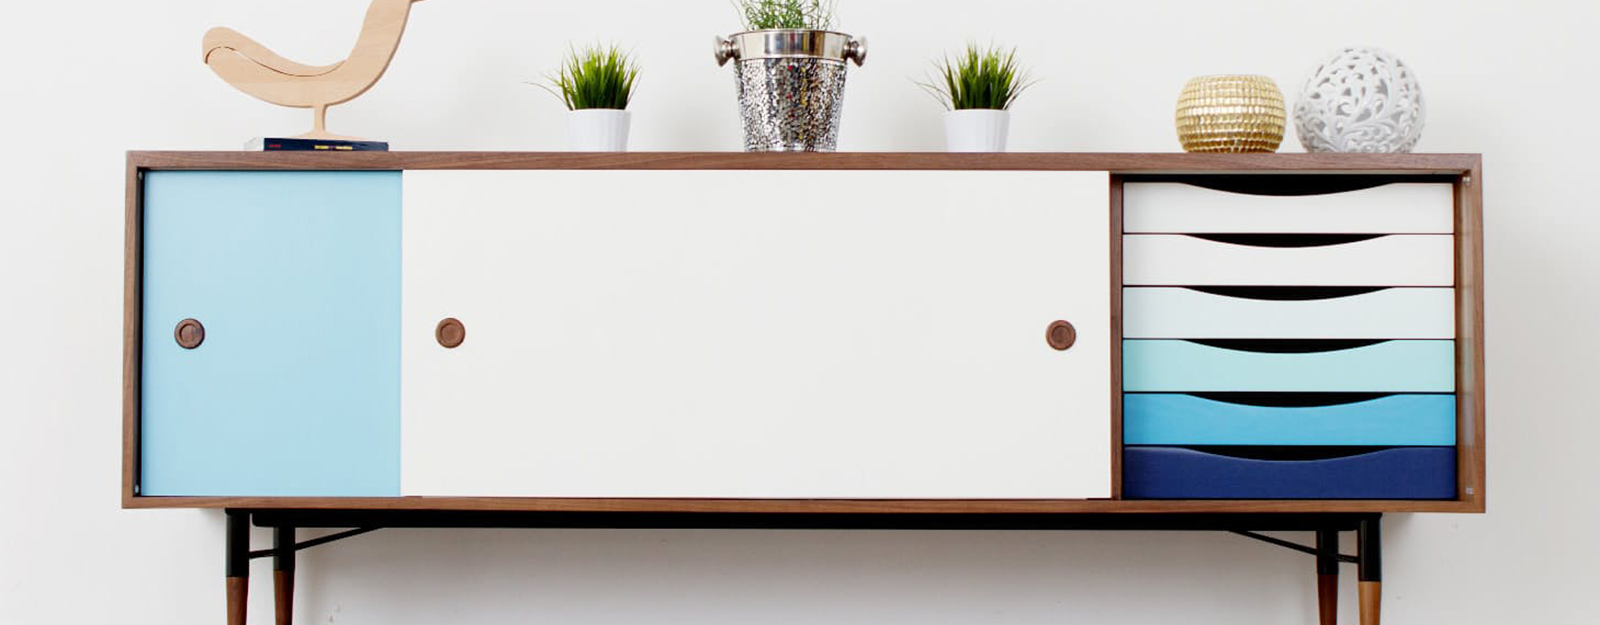 The Problem With Joybird's Affordable Midcenturymoderninspired Furniture   Core77